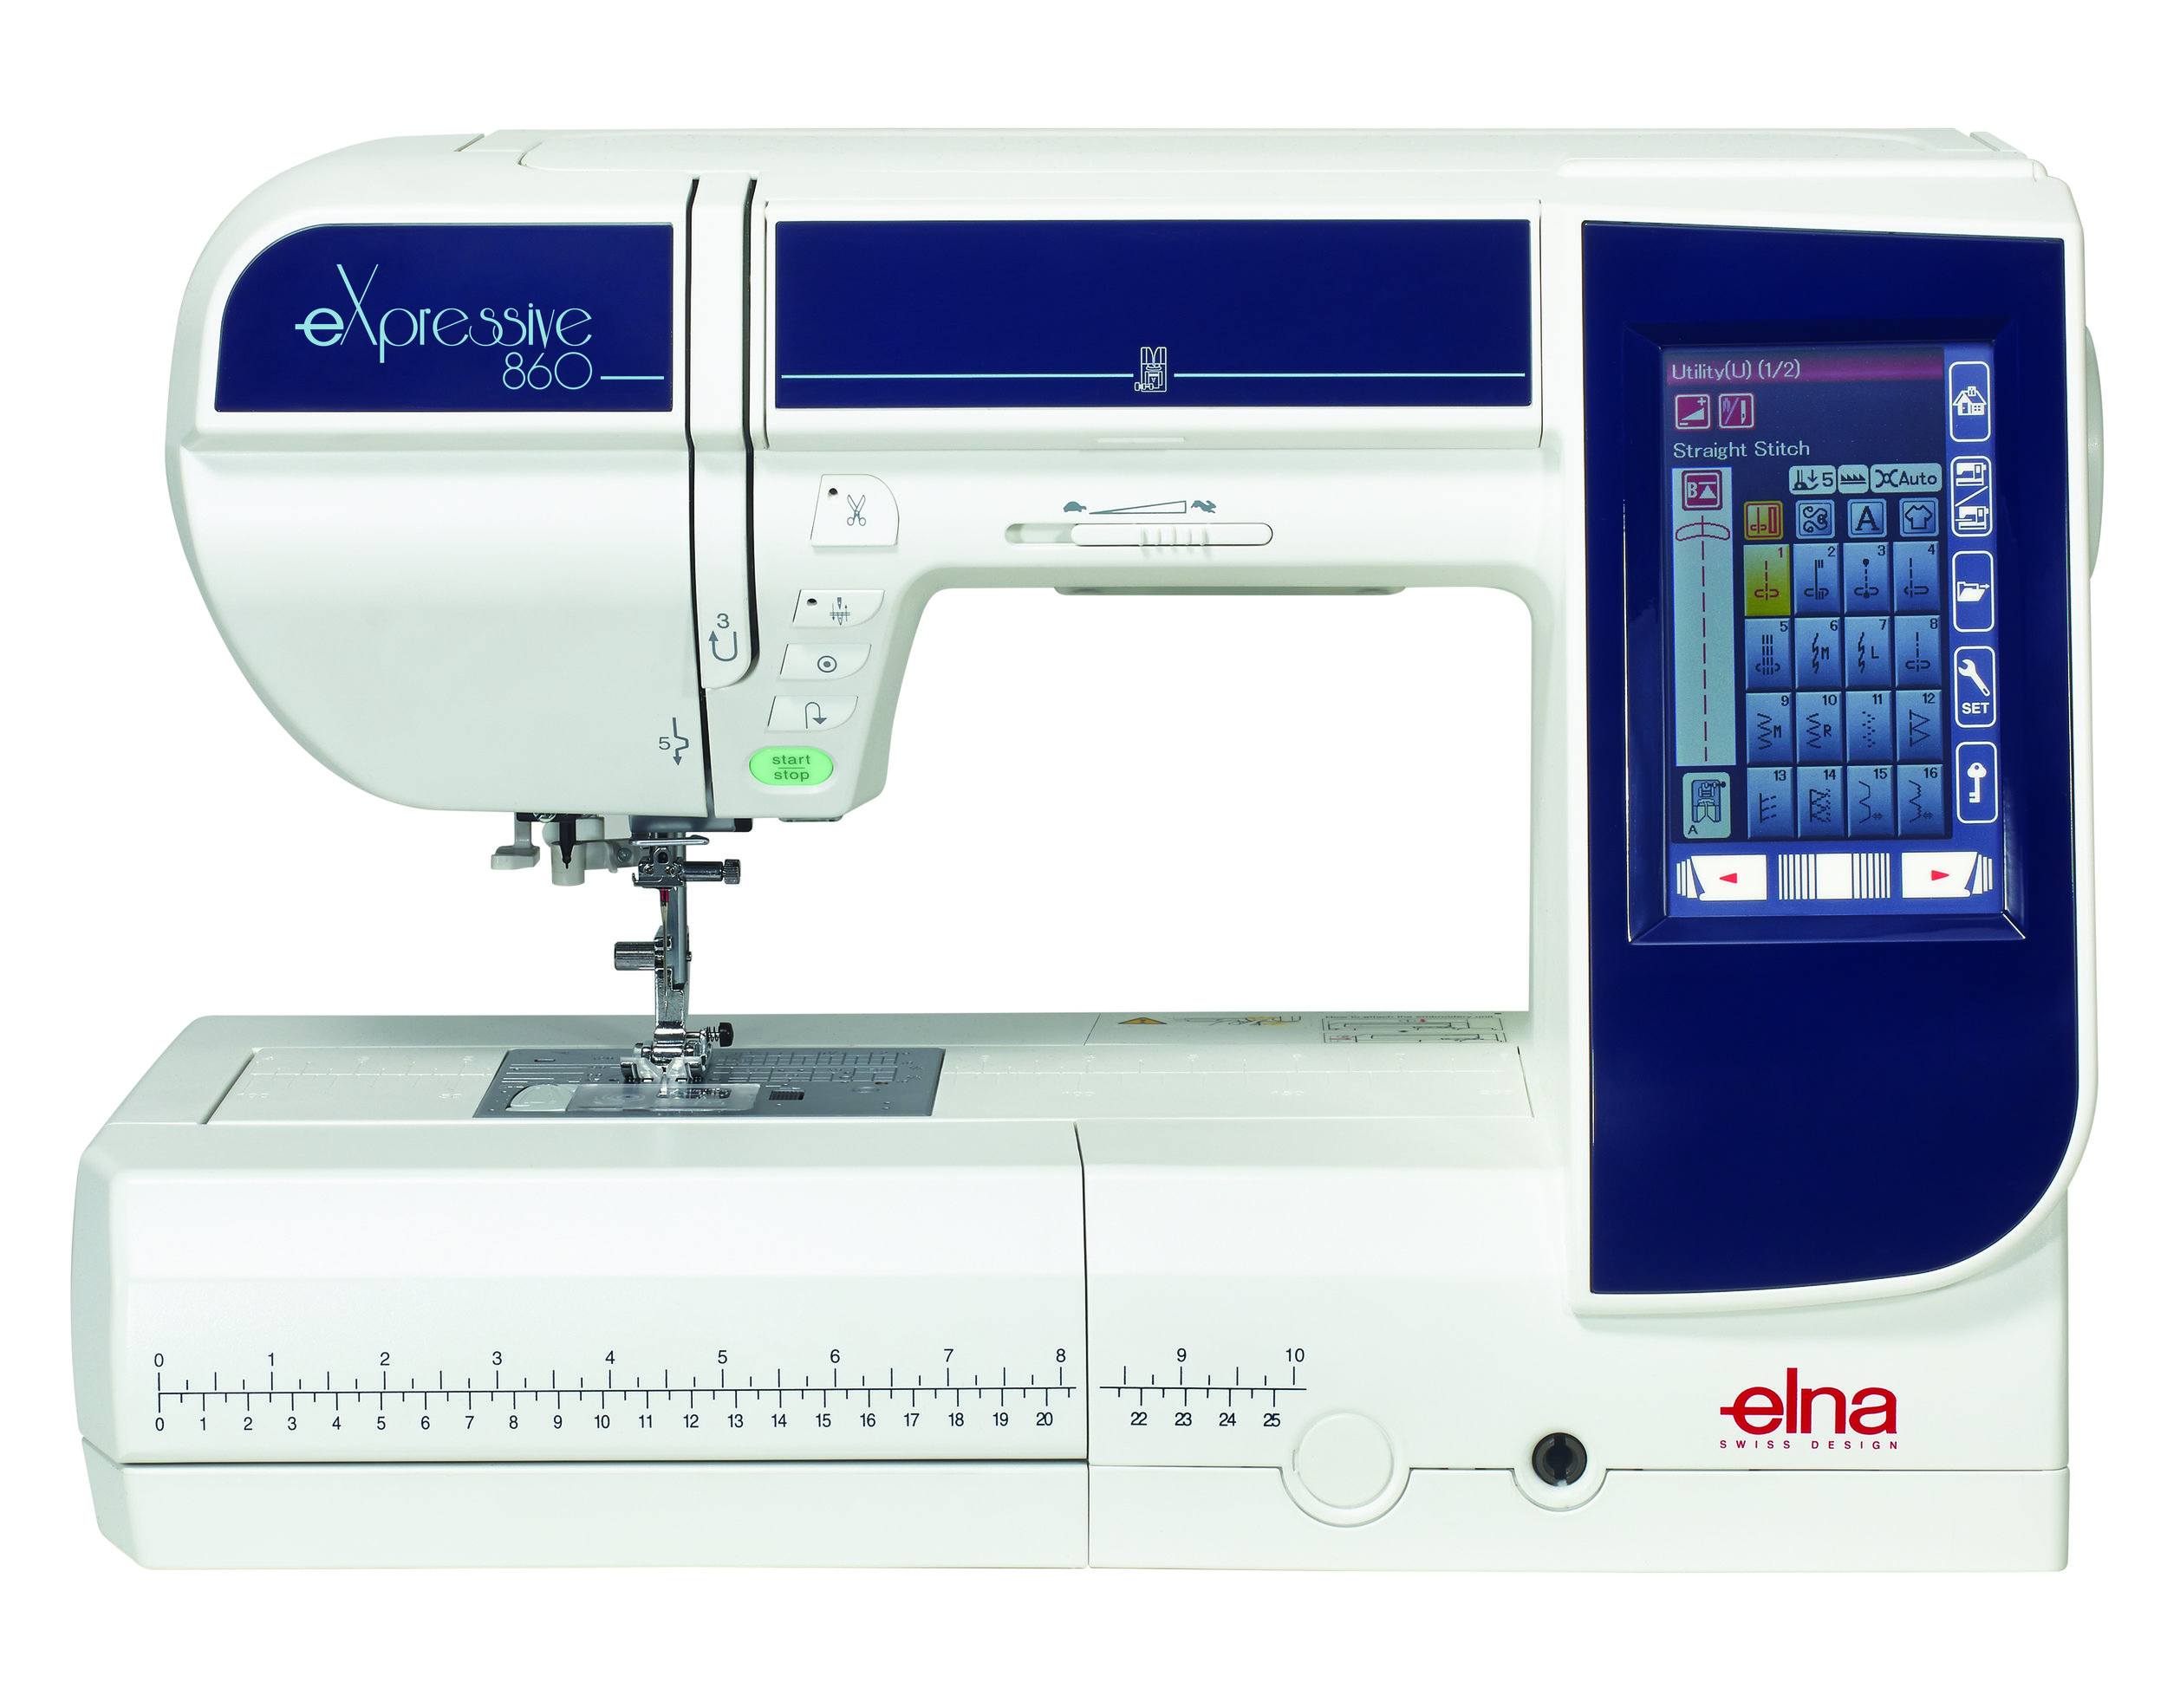 Elna Expressive 860  * LCD screen  * built-in needle threader  * 200 stitches  * 171 built-in embroidery designs  * built-in scissors  * speed control